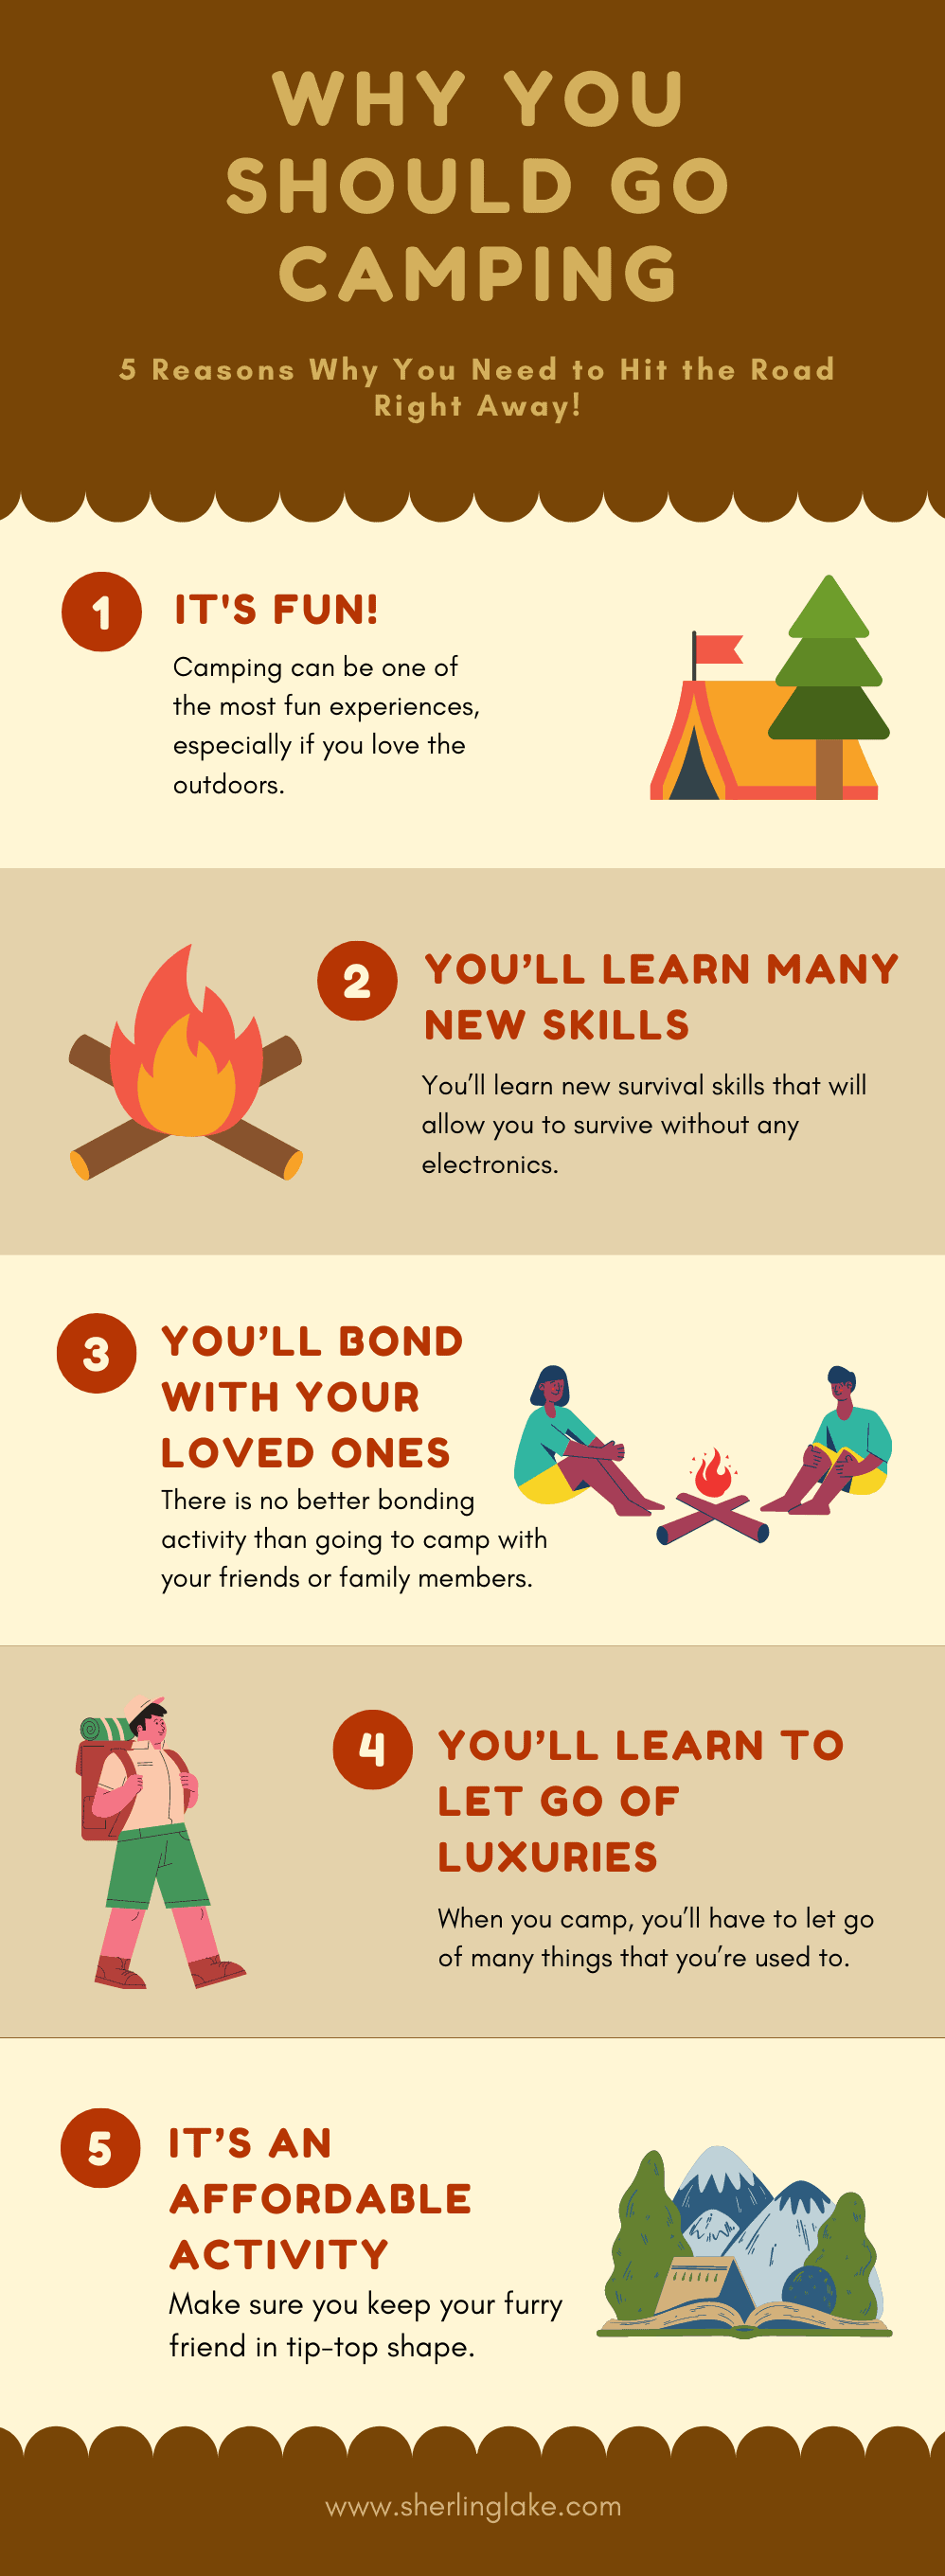 Infographic showing why you need to go camping as part of the camping guide by Sherlinglake.com